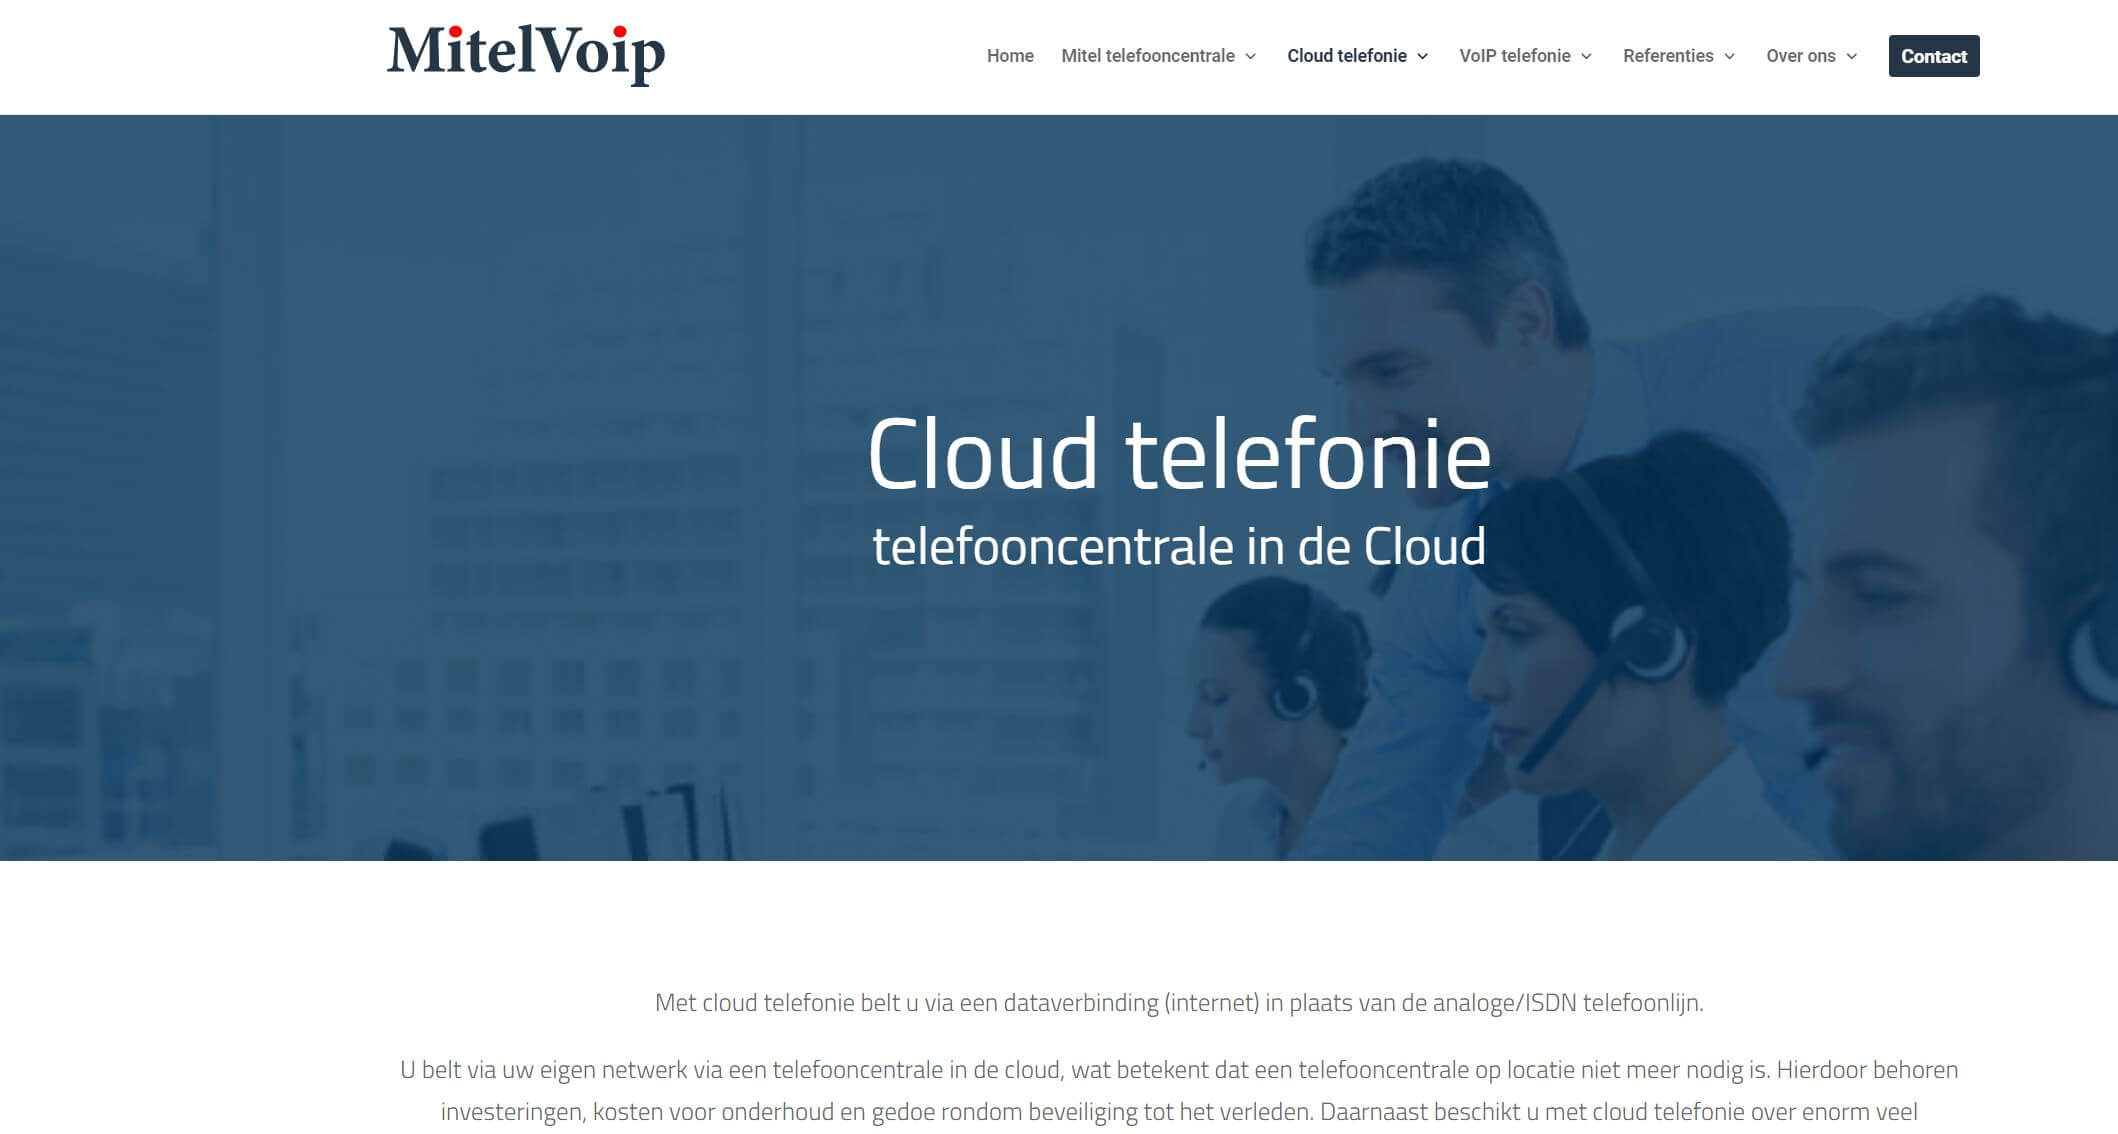 website mitelvoip.nl